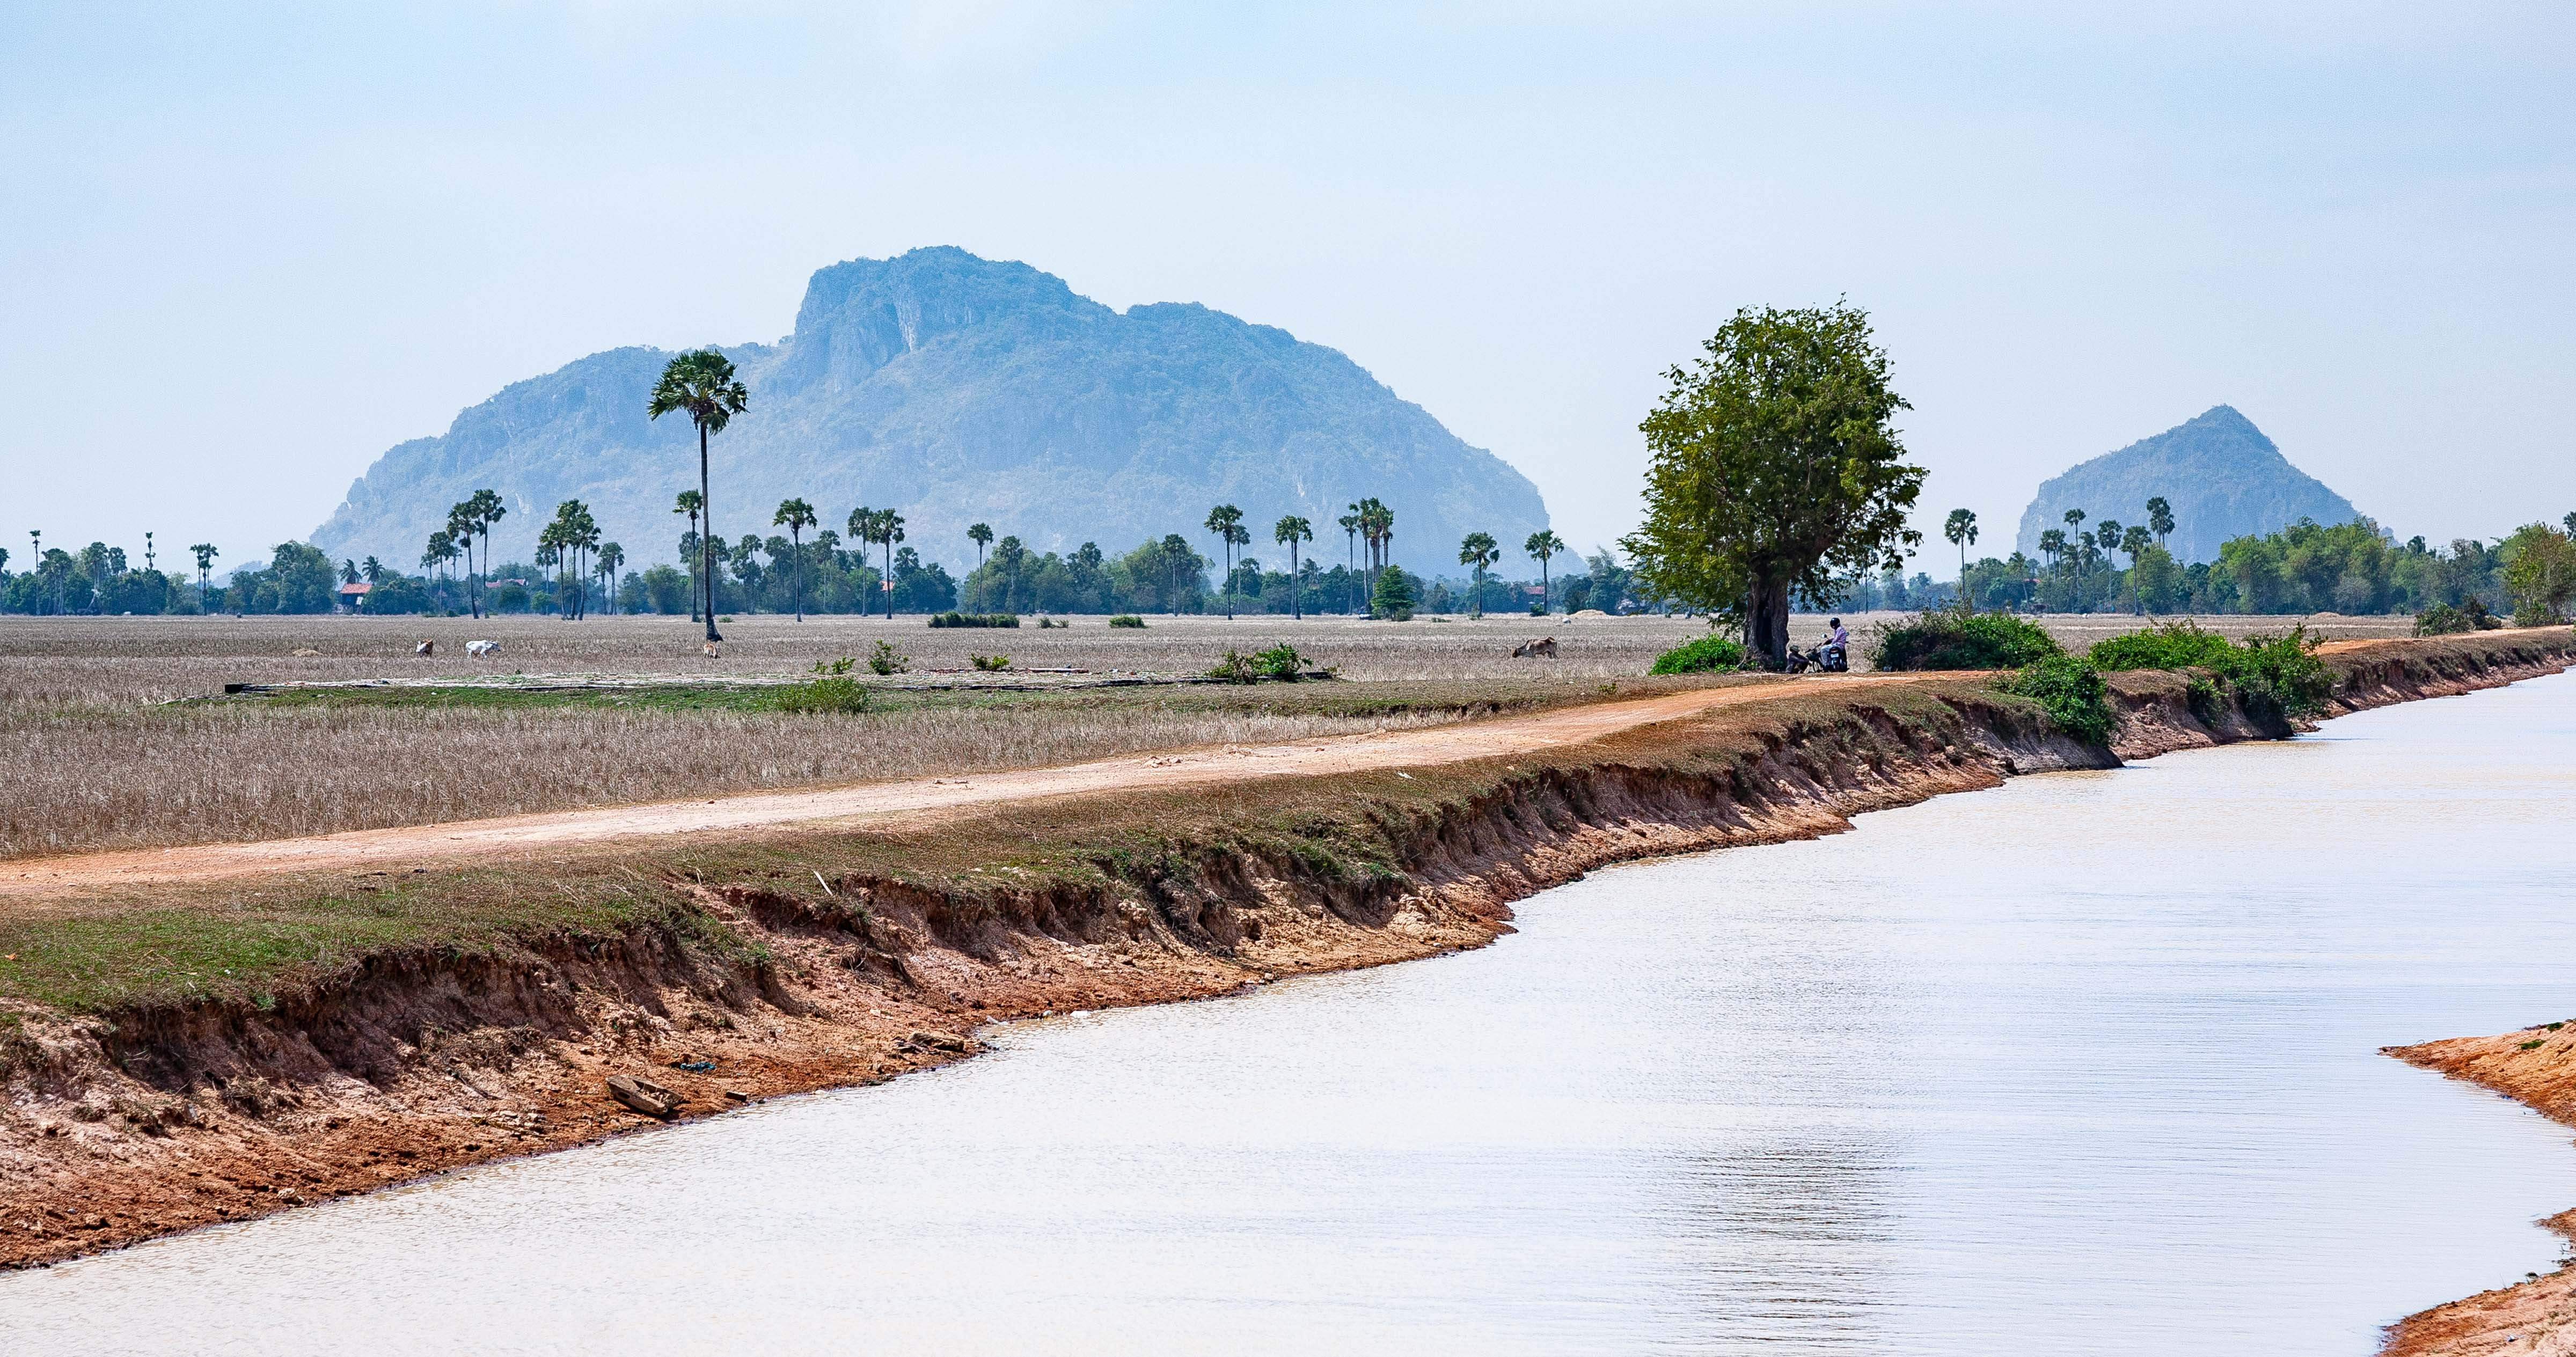 Cambodia, Kampot Prov, Landscape And Canal, 2010, IMG 4849